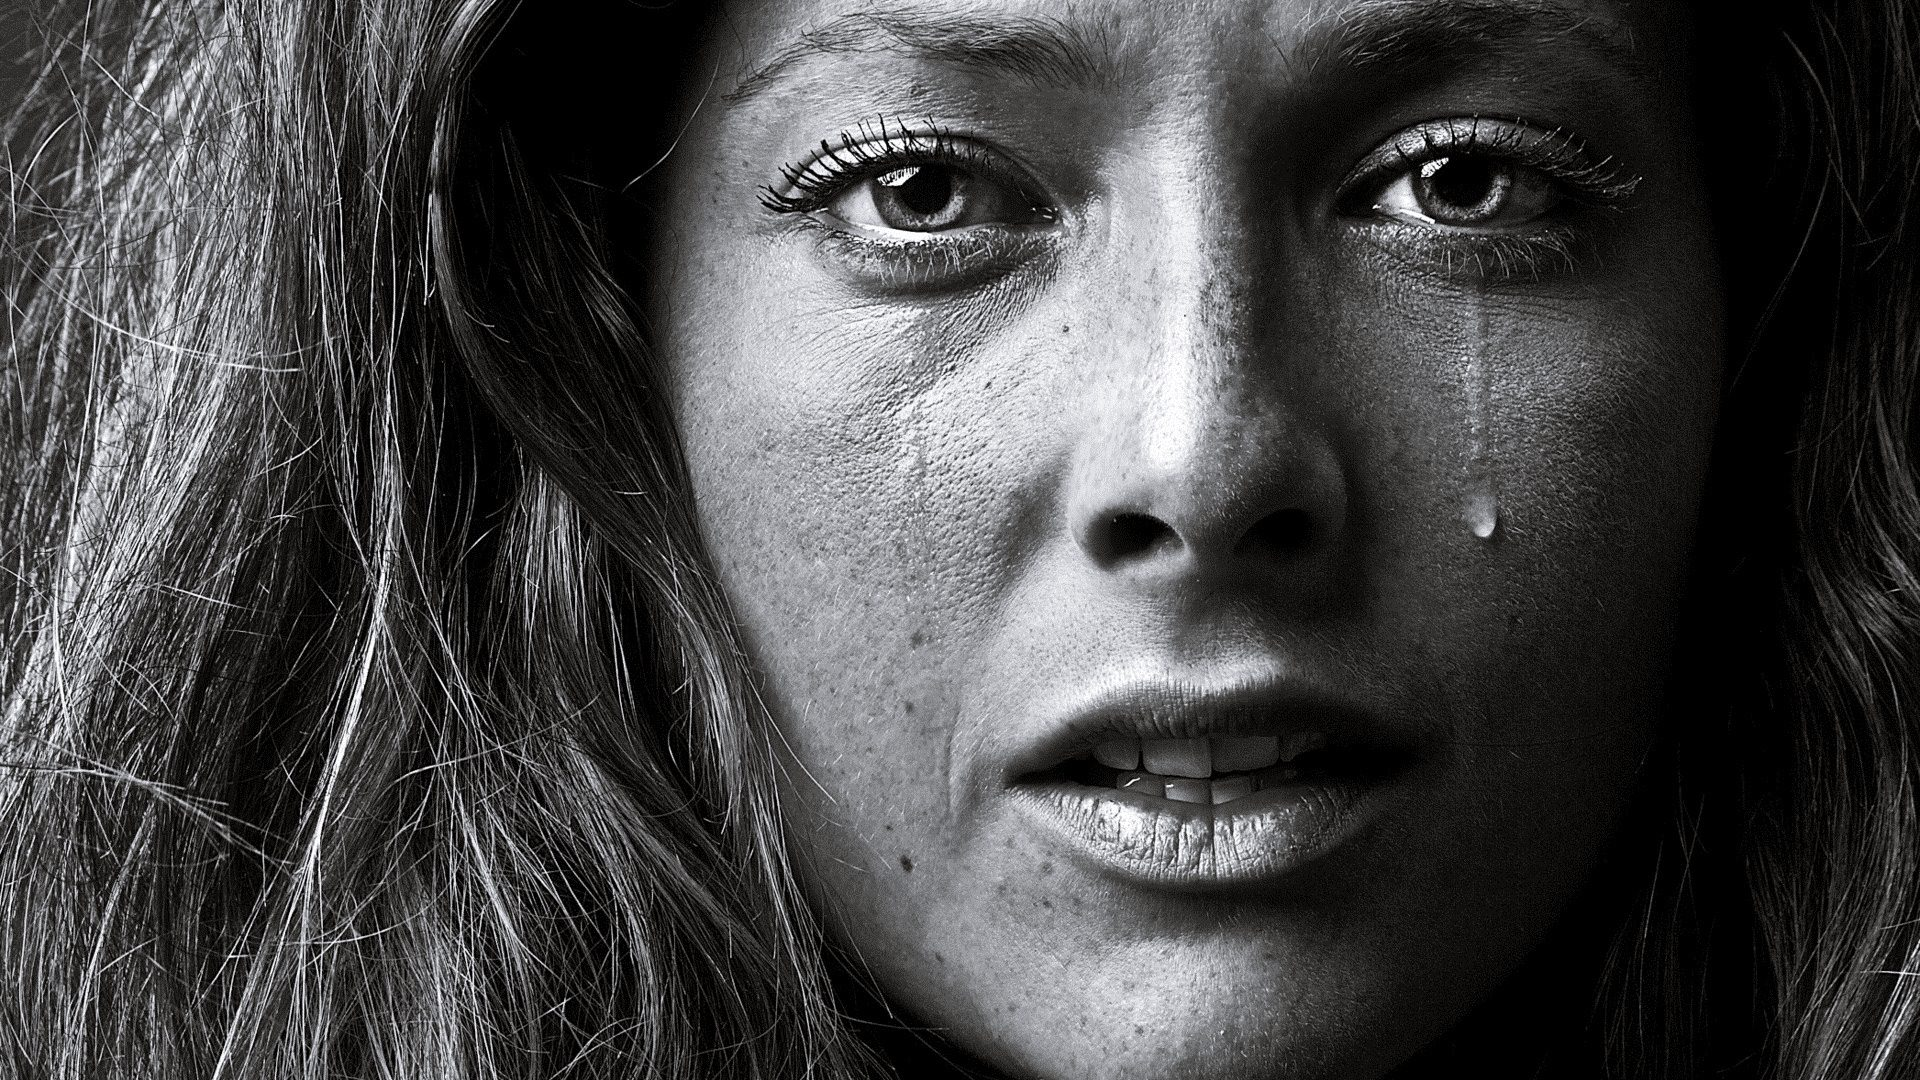 Crying-Women-Portrait-Images